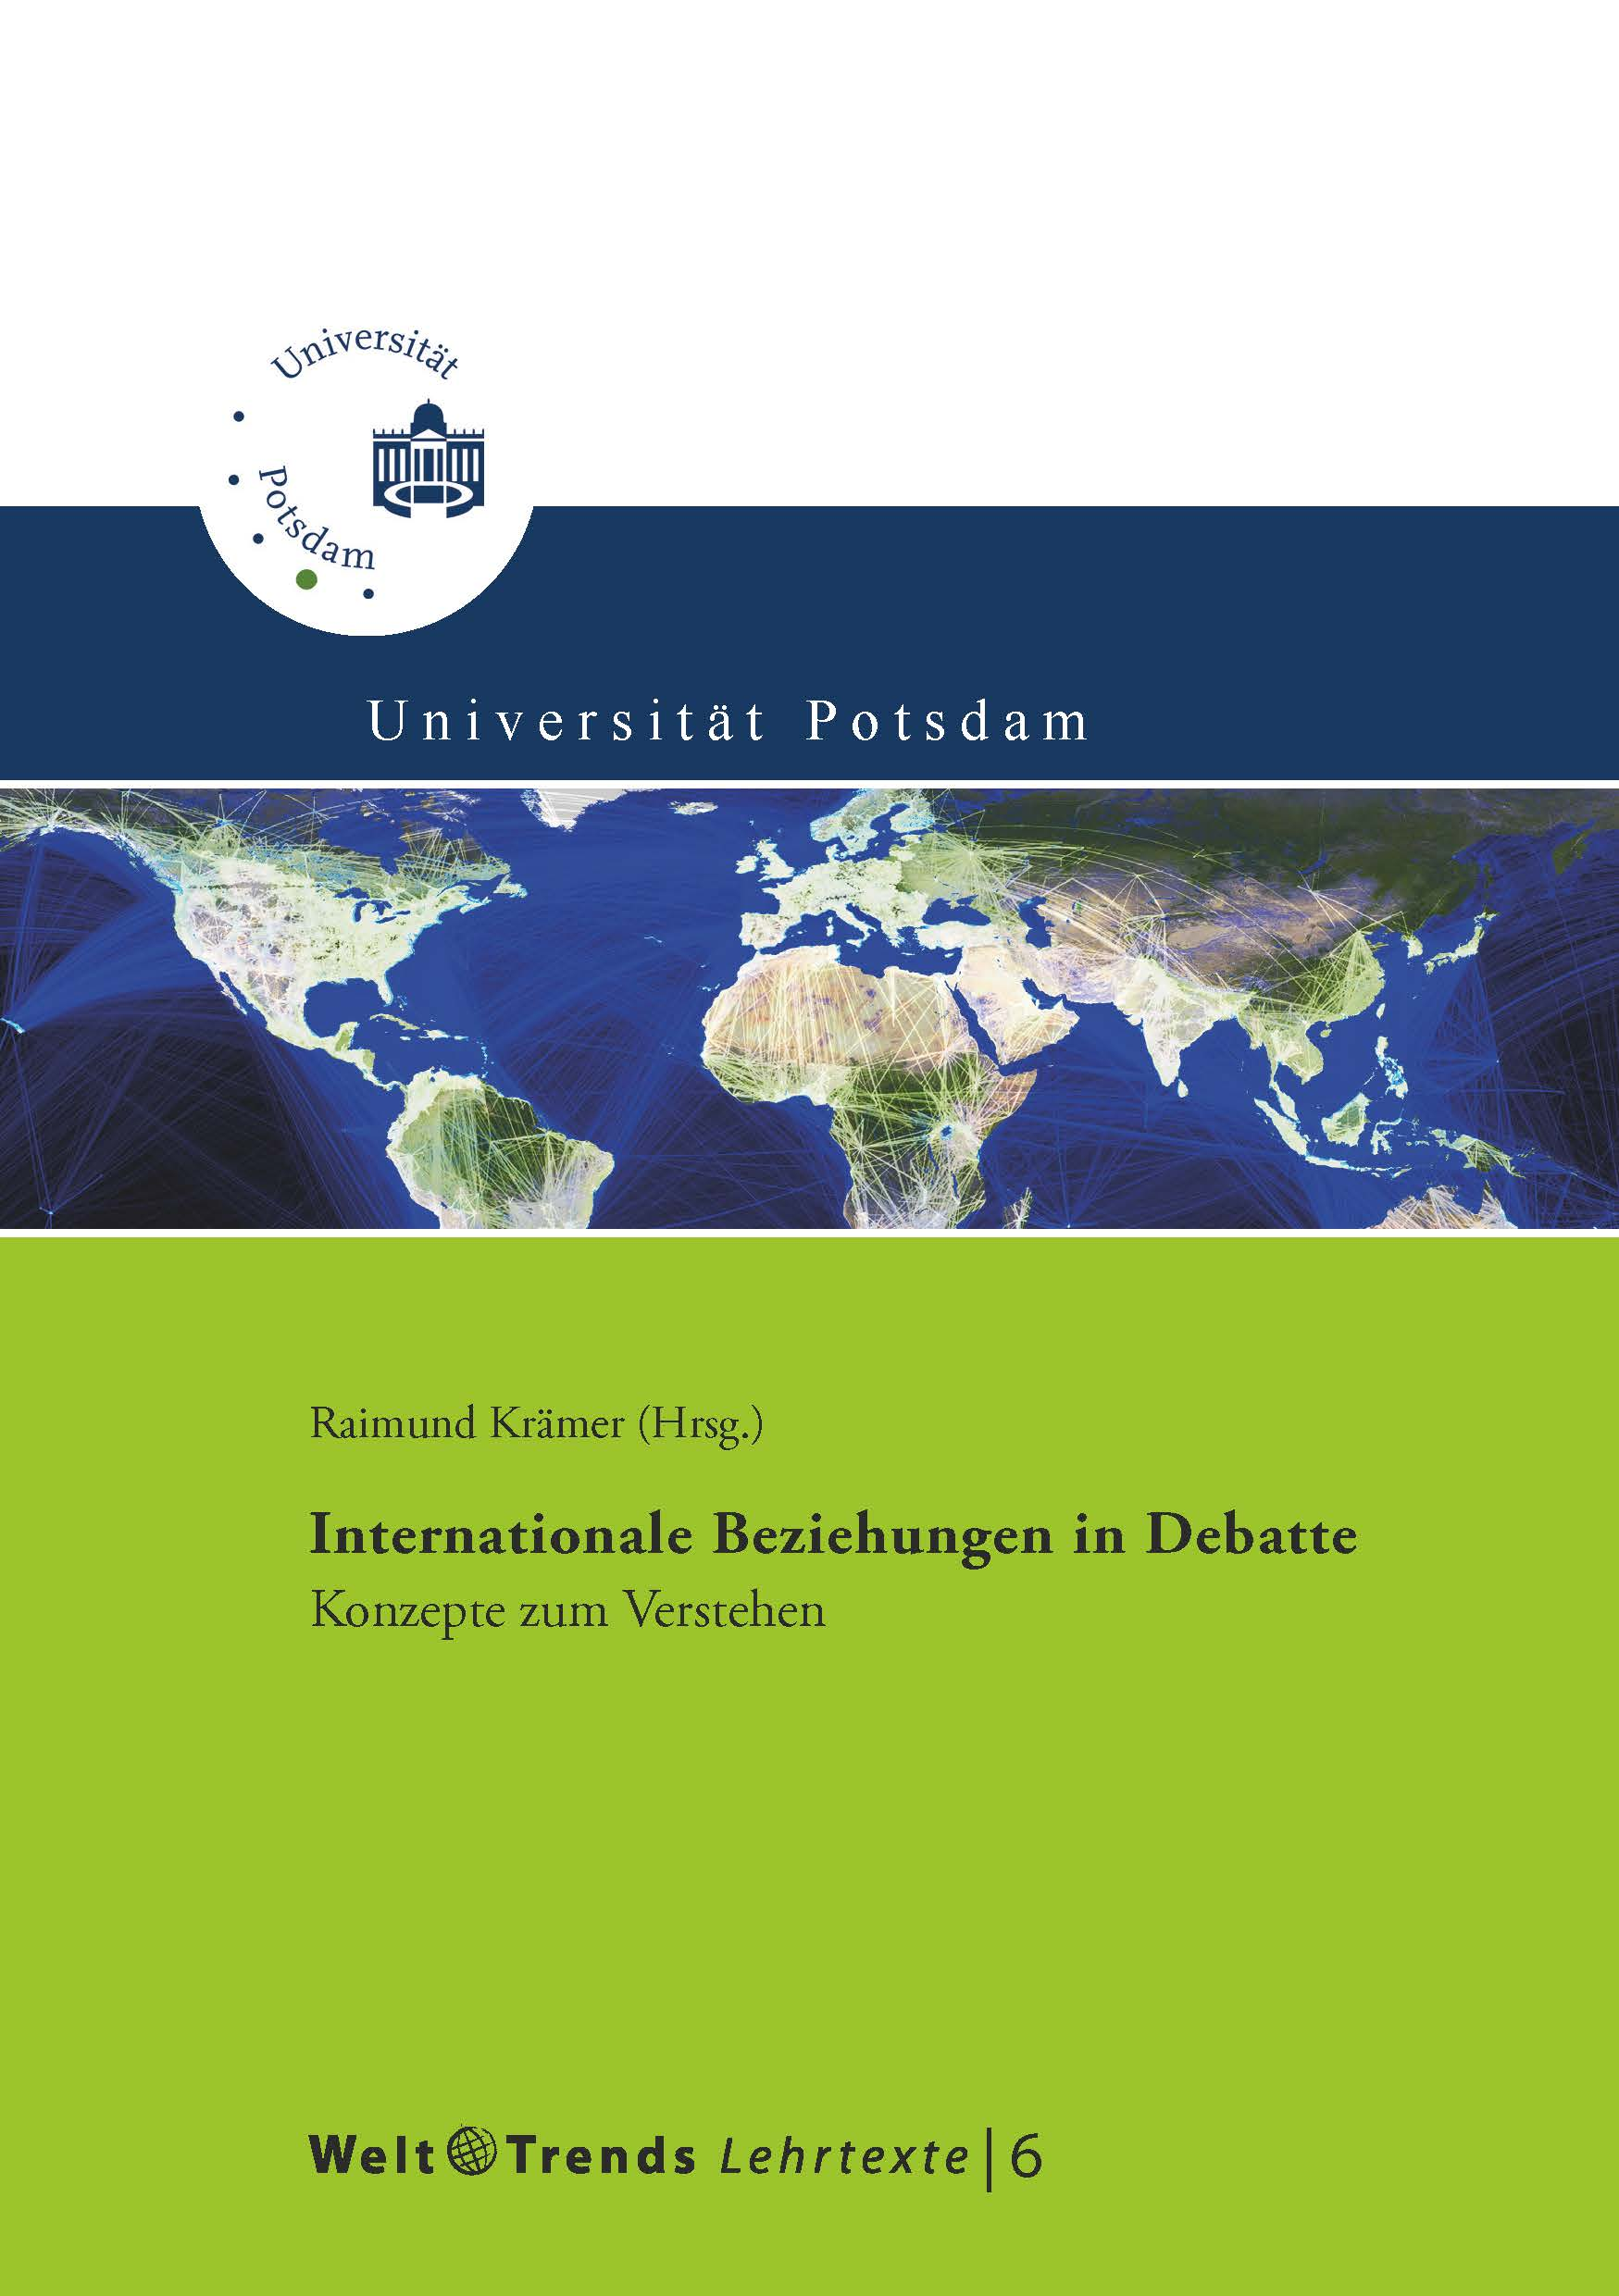 Lehrtexte 6, Internationale Beziehungen in Debatte